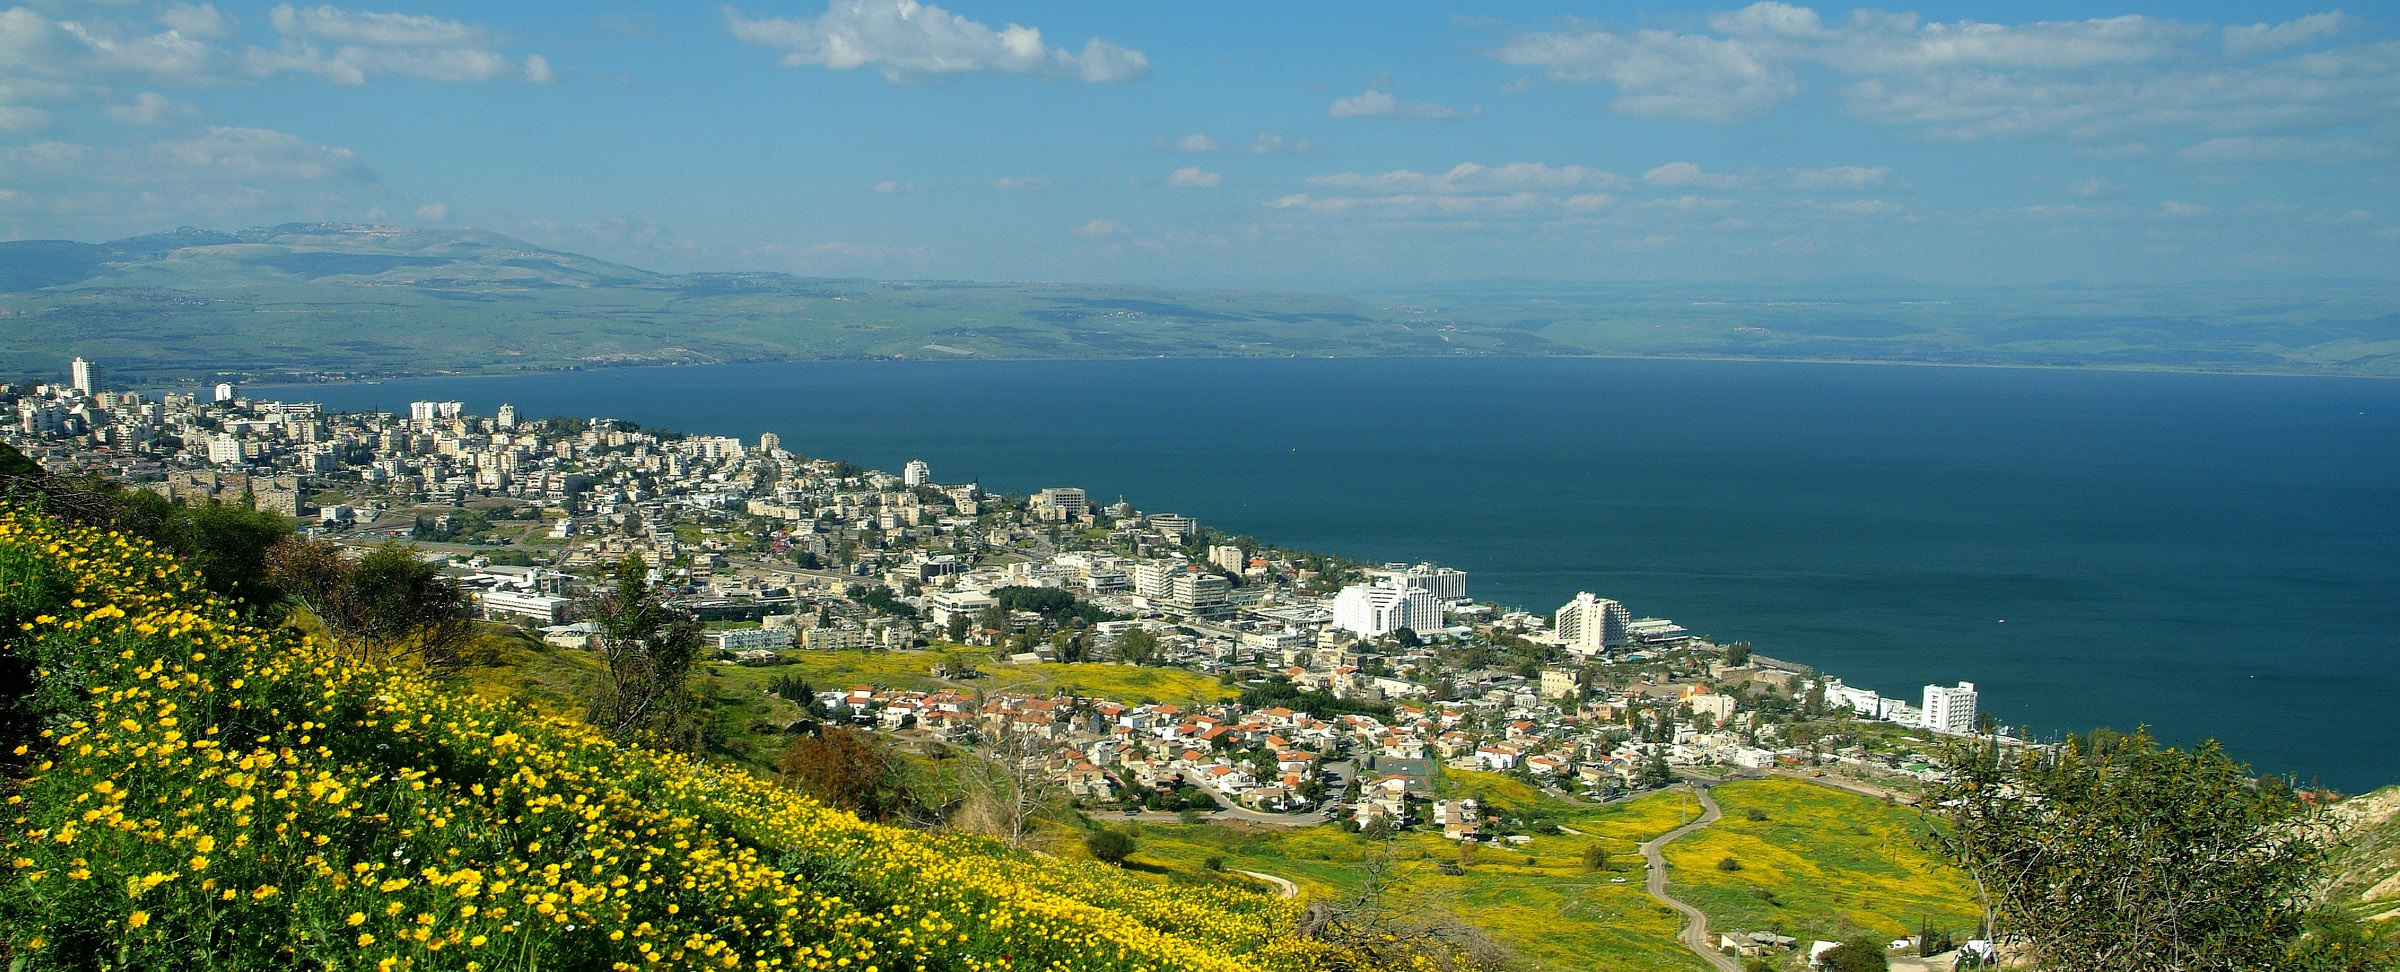 The Sea of Galilee and Tiberias in Israel - by Almog